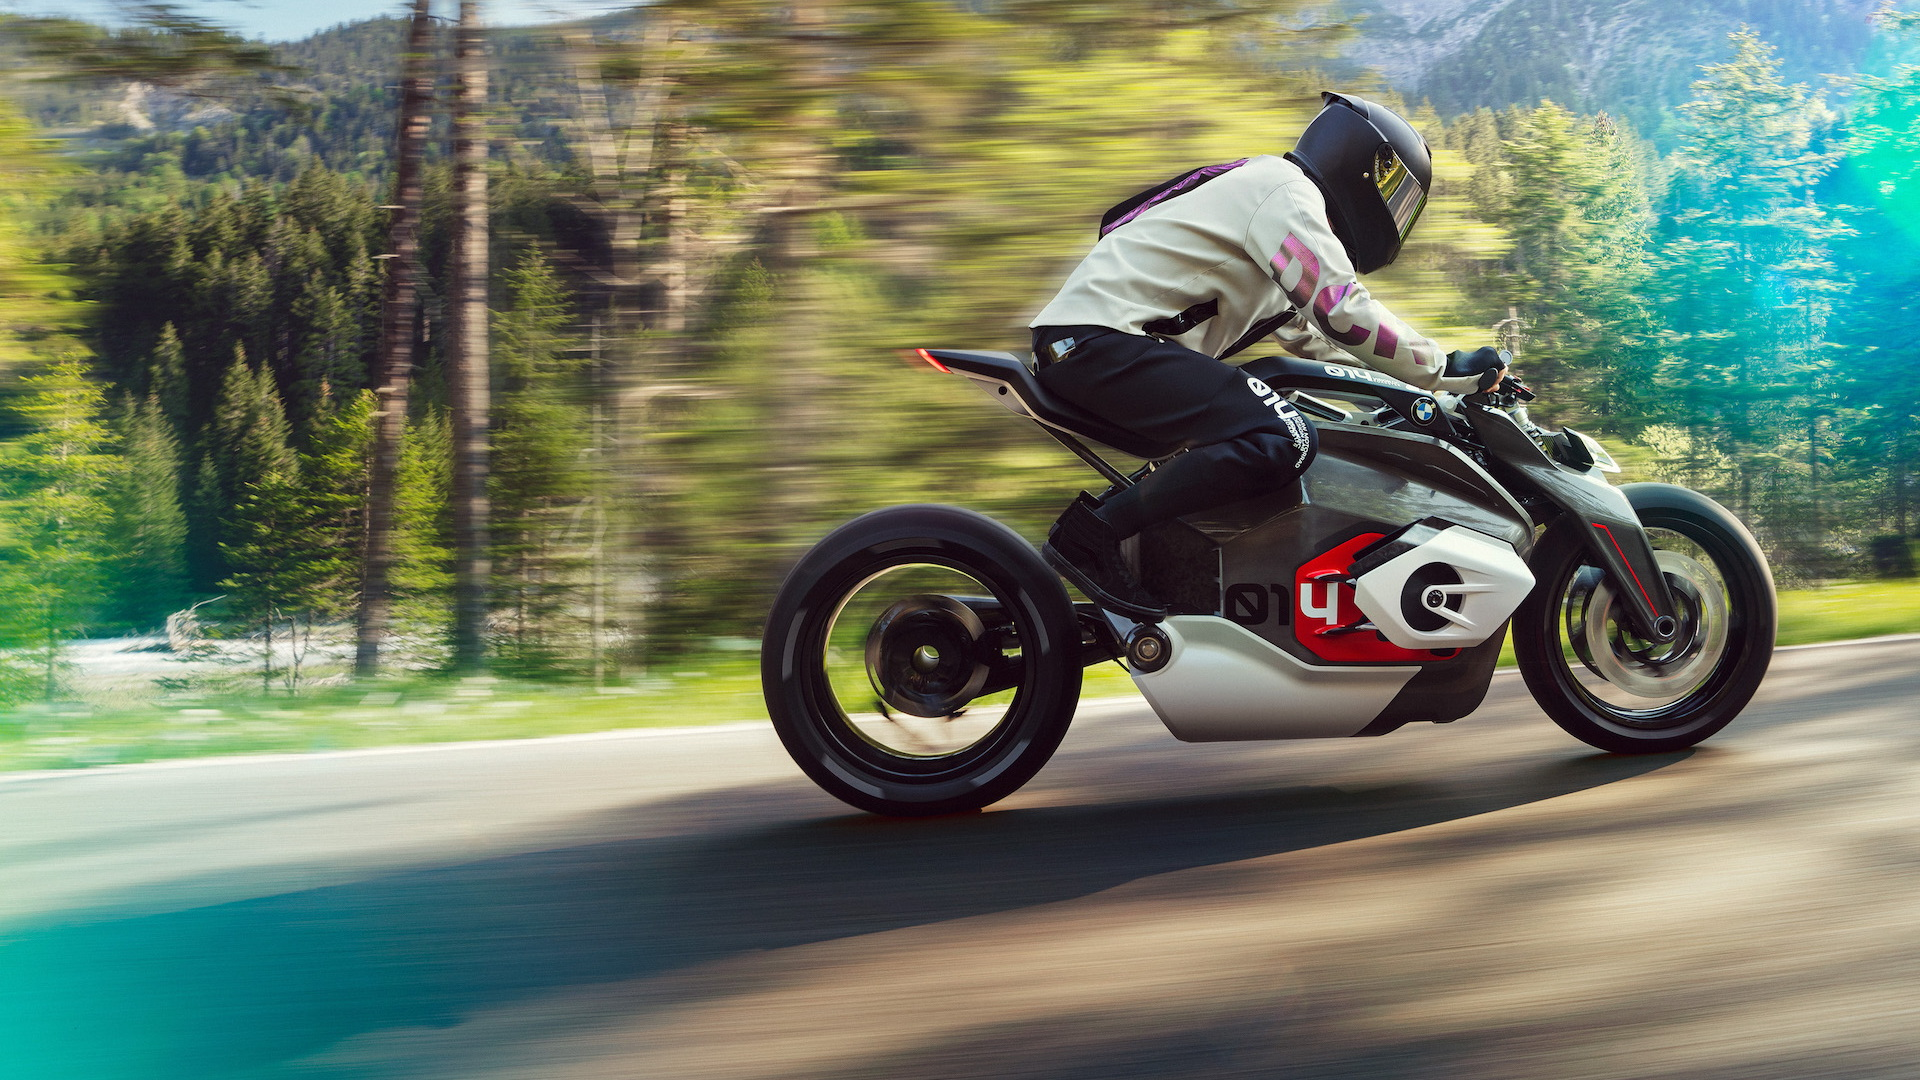 electric motorcycles - Green Car Photos, News, Reviews, and